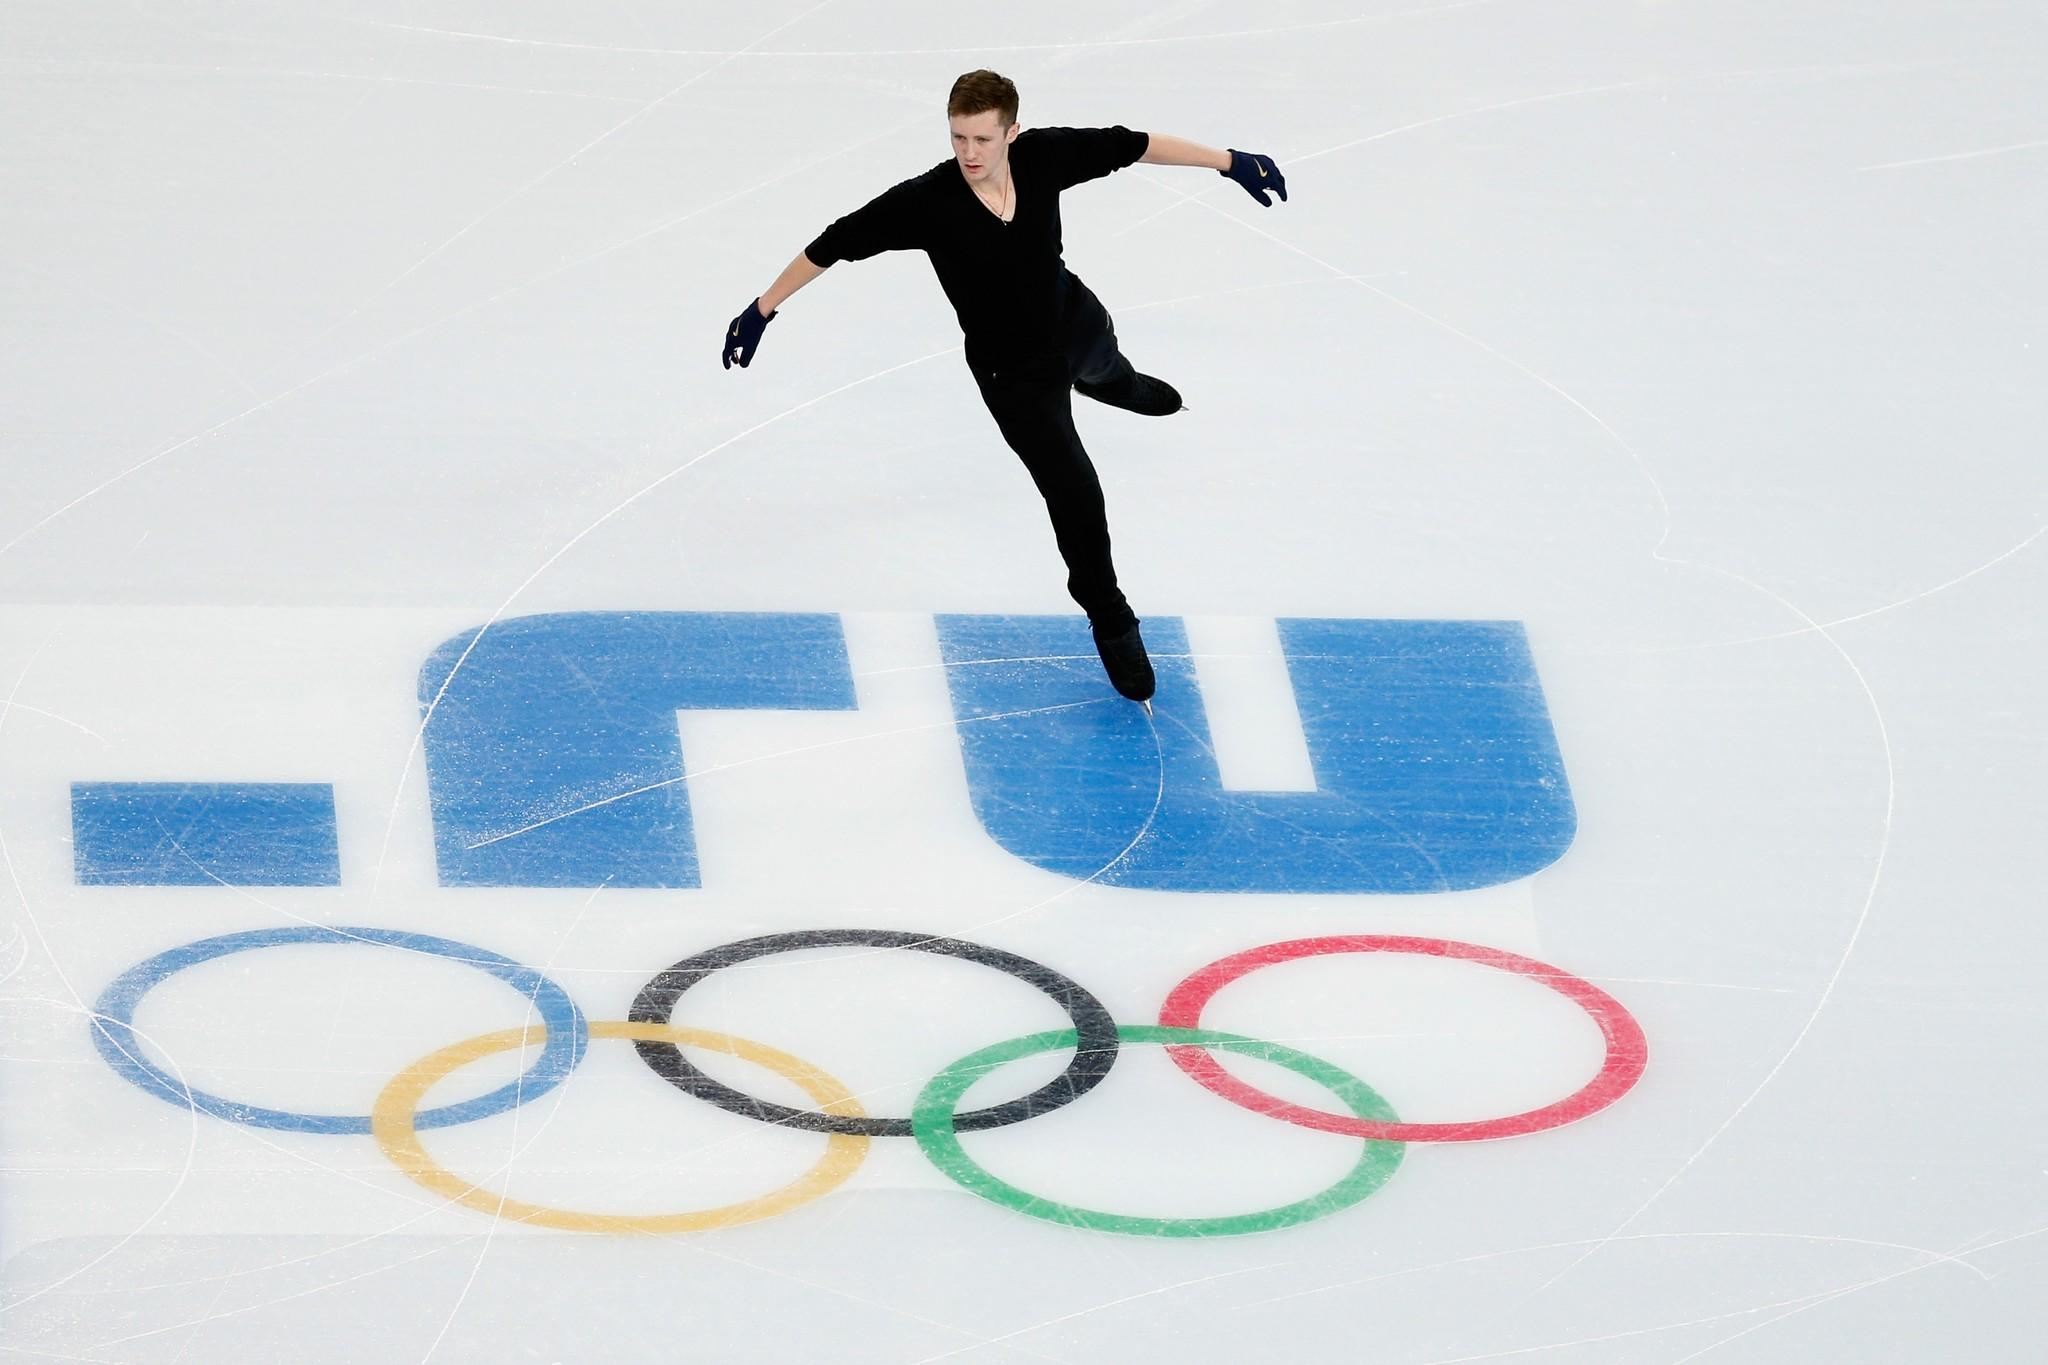 Jeremy Abbott during Monday's practice at the Iceberg figure skating arena.